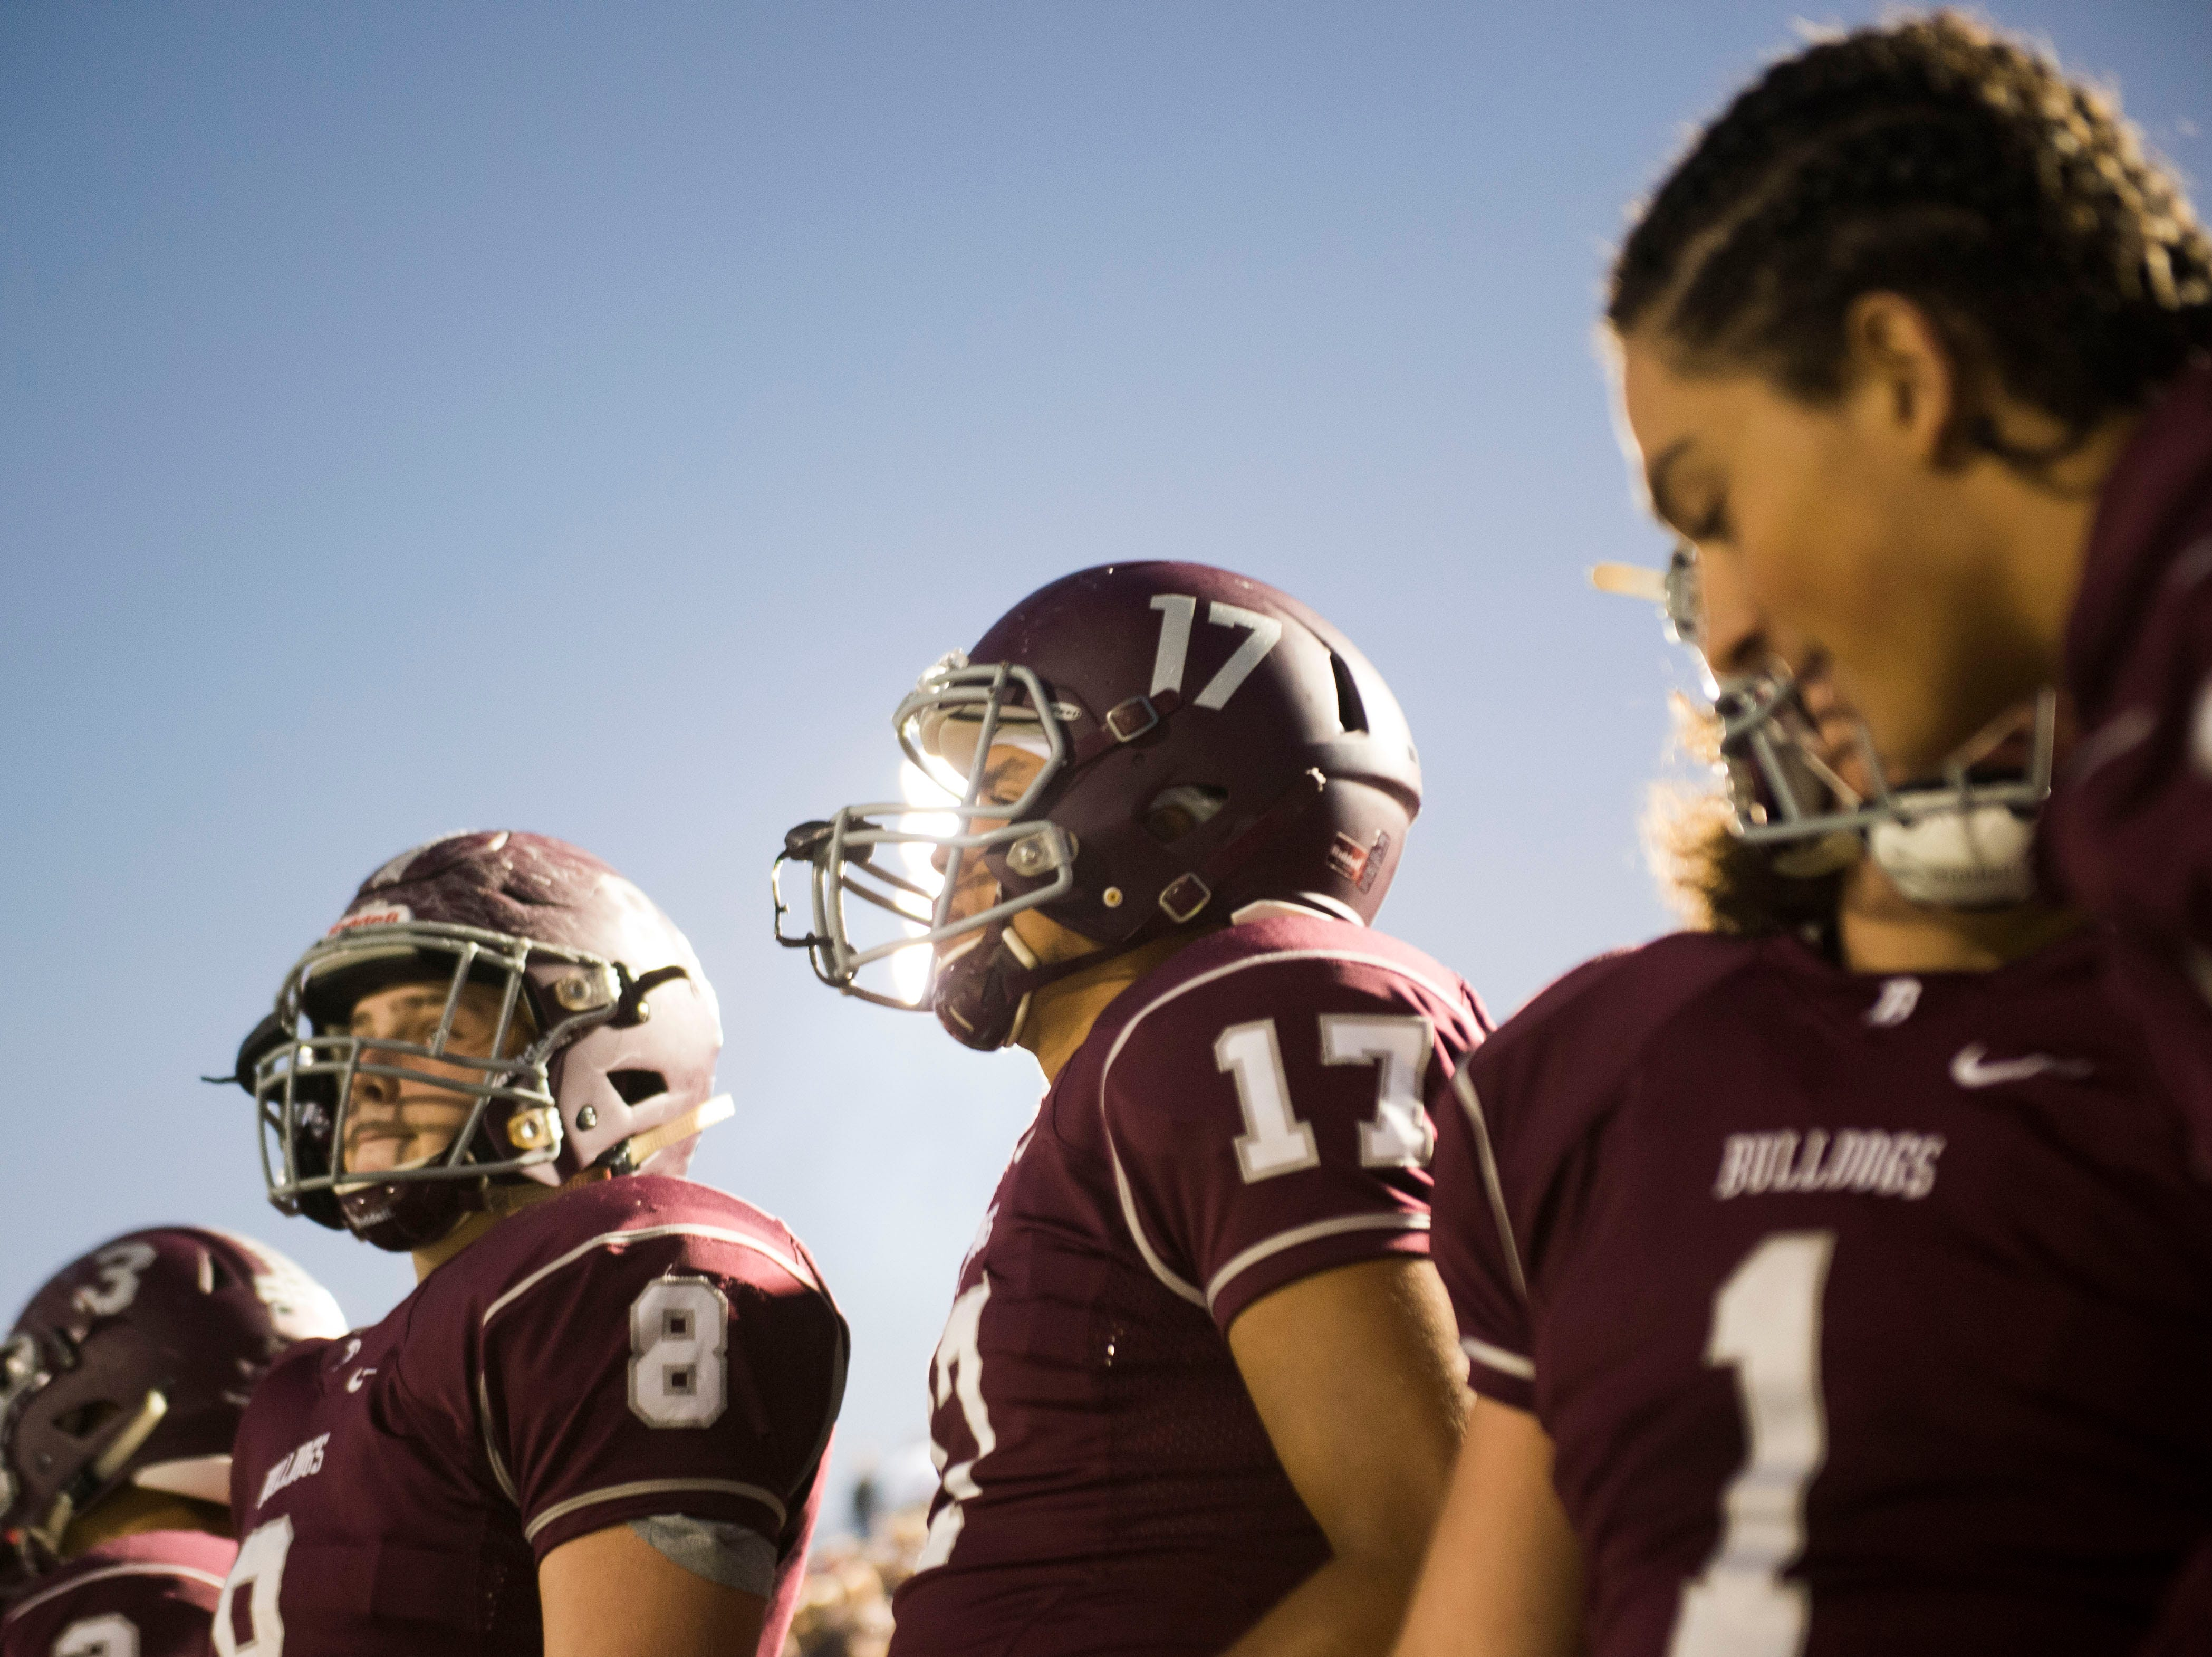 Bearden players stand on the sidelines during a game between Bearden and Farragut at Bearden Thursday, Oct. 11, 2018. Bearden took down Farragut 17-13.